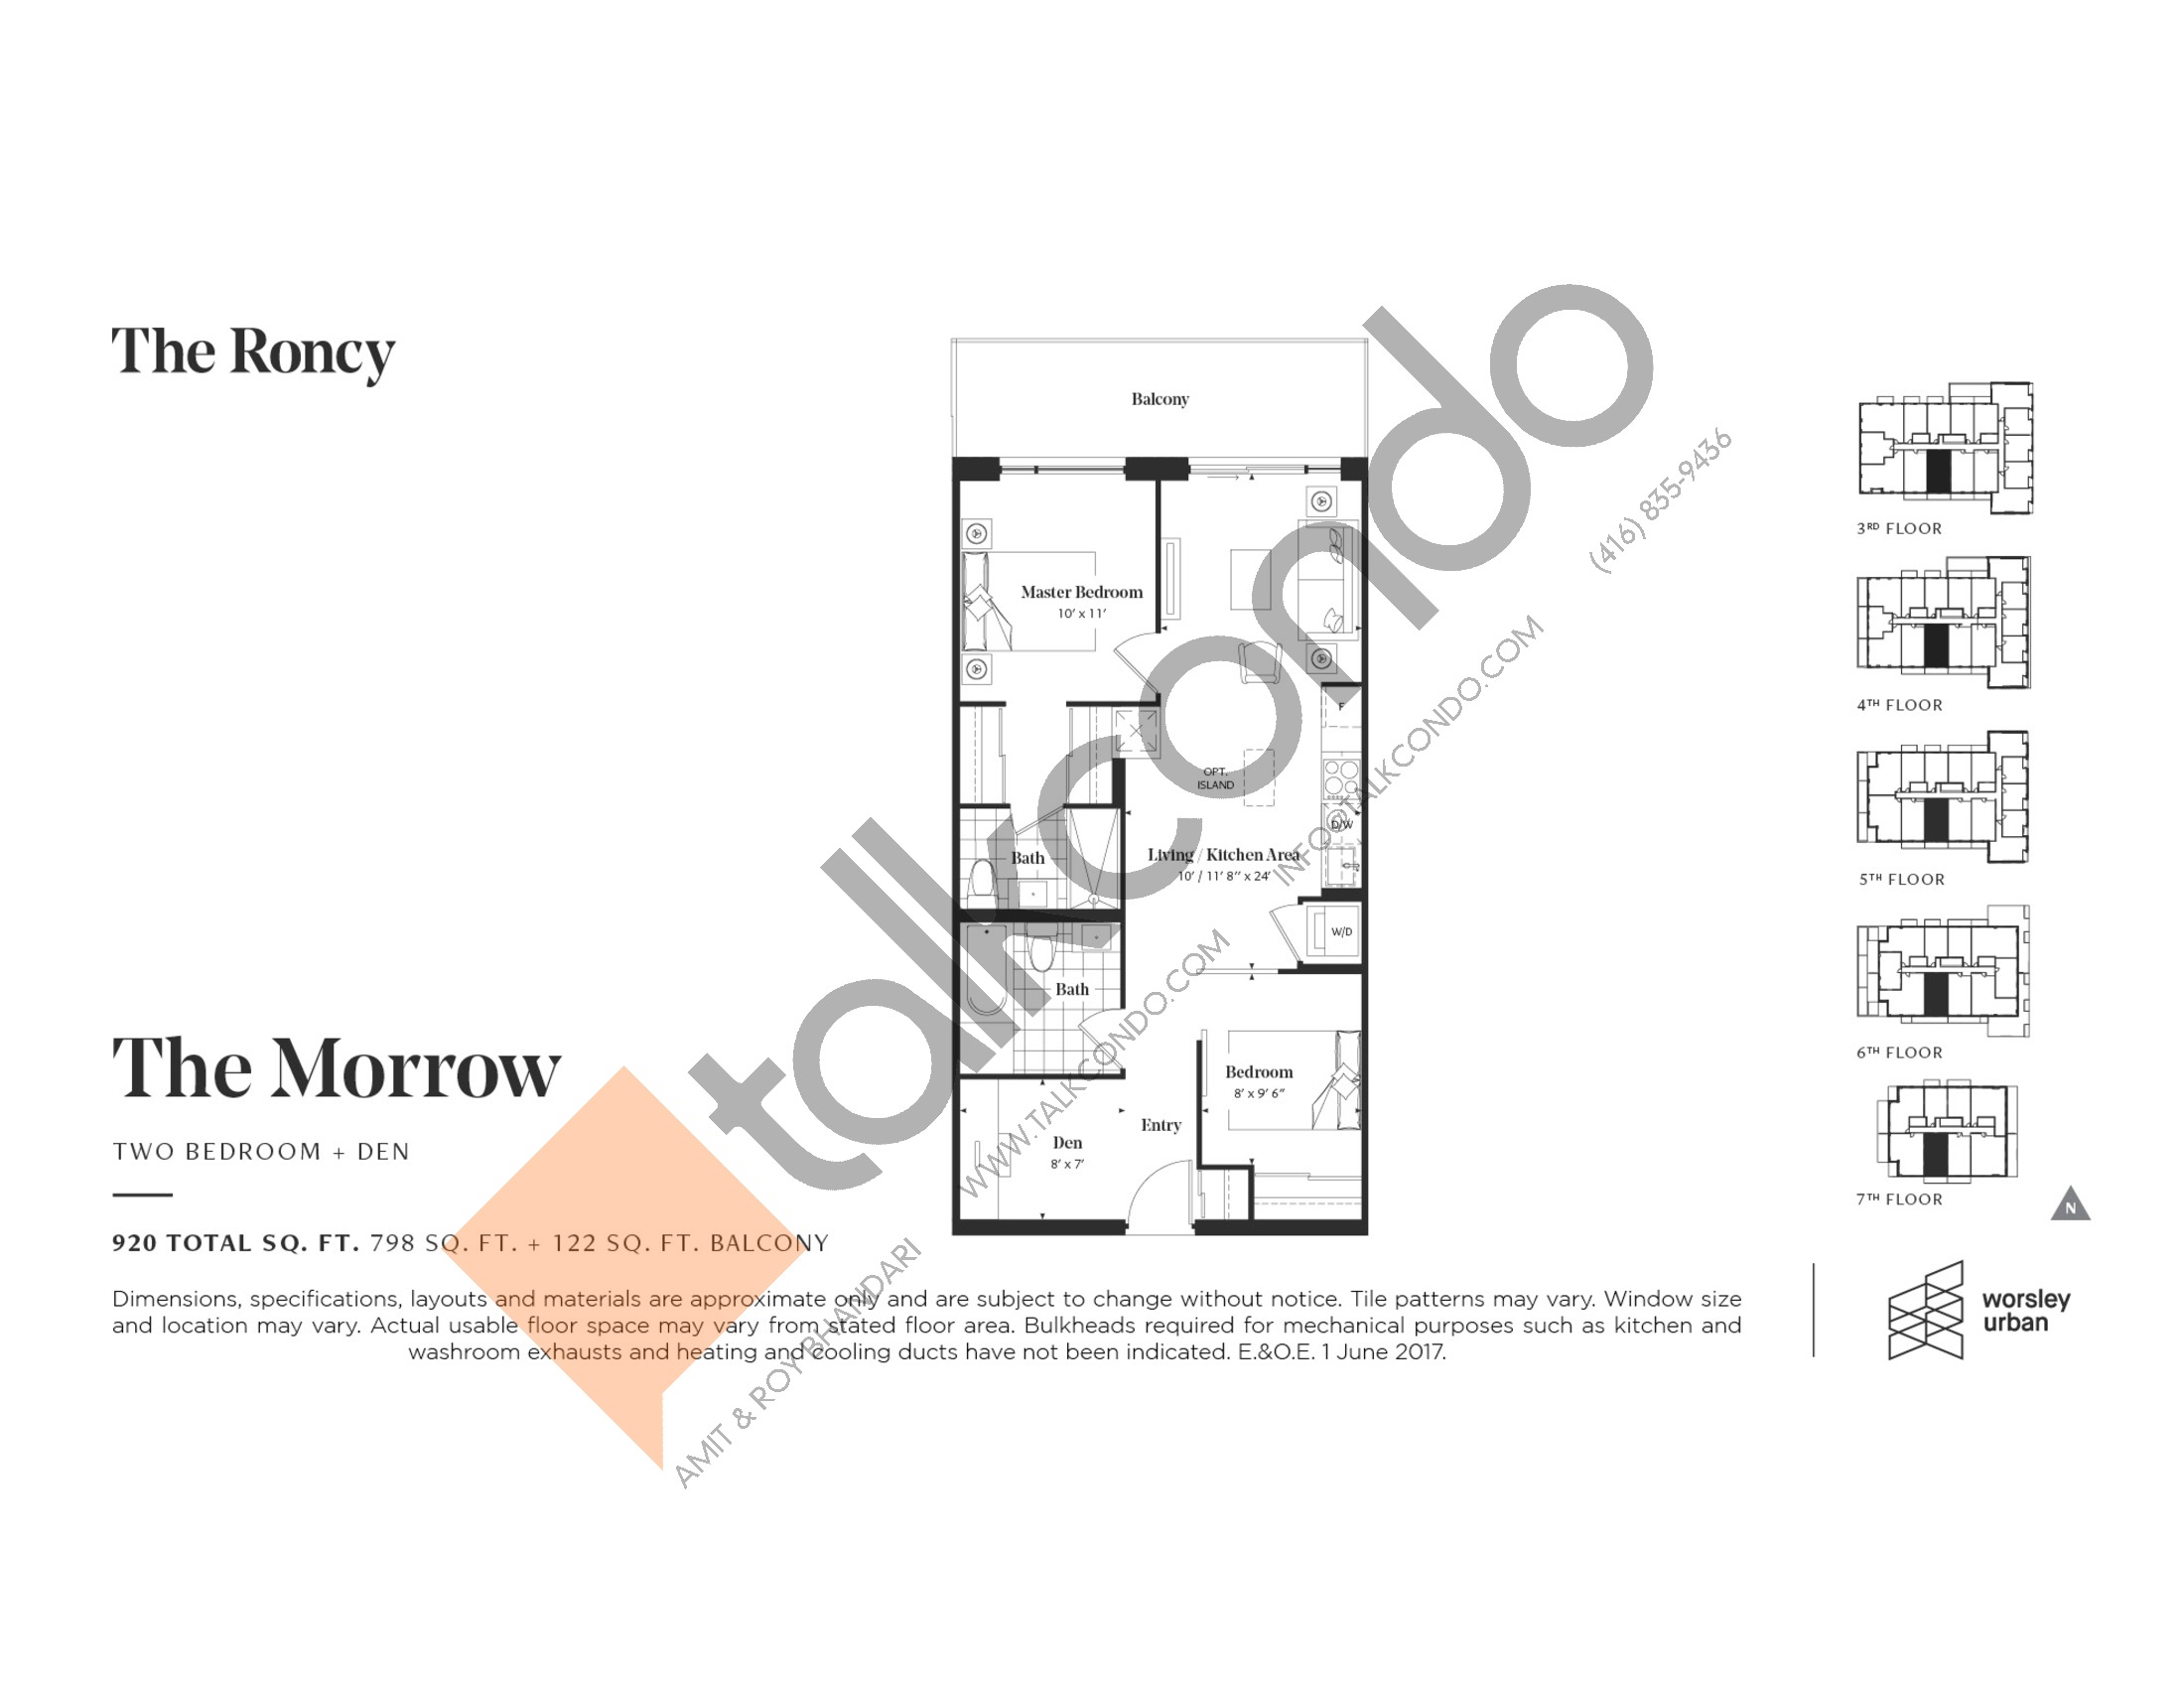 The Morrow Floor Plan at The Roncy Condos - 798 sq.ft